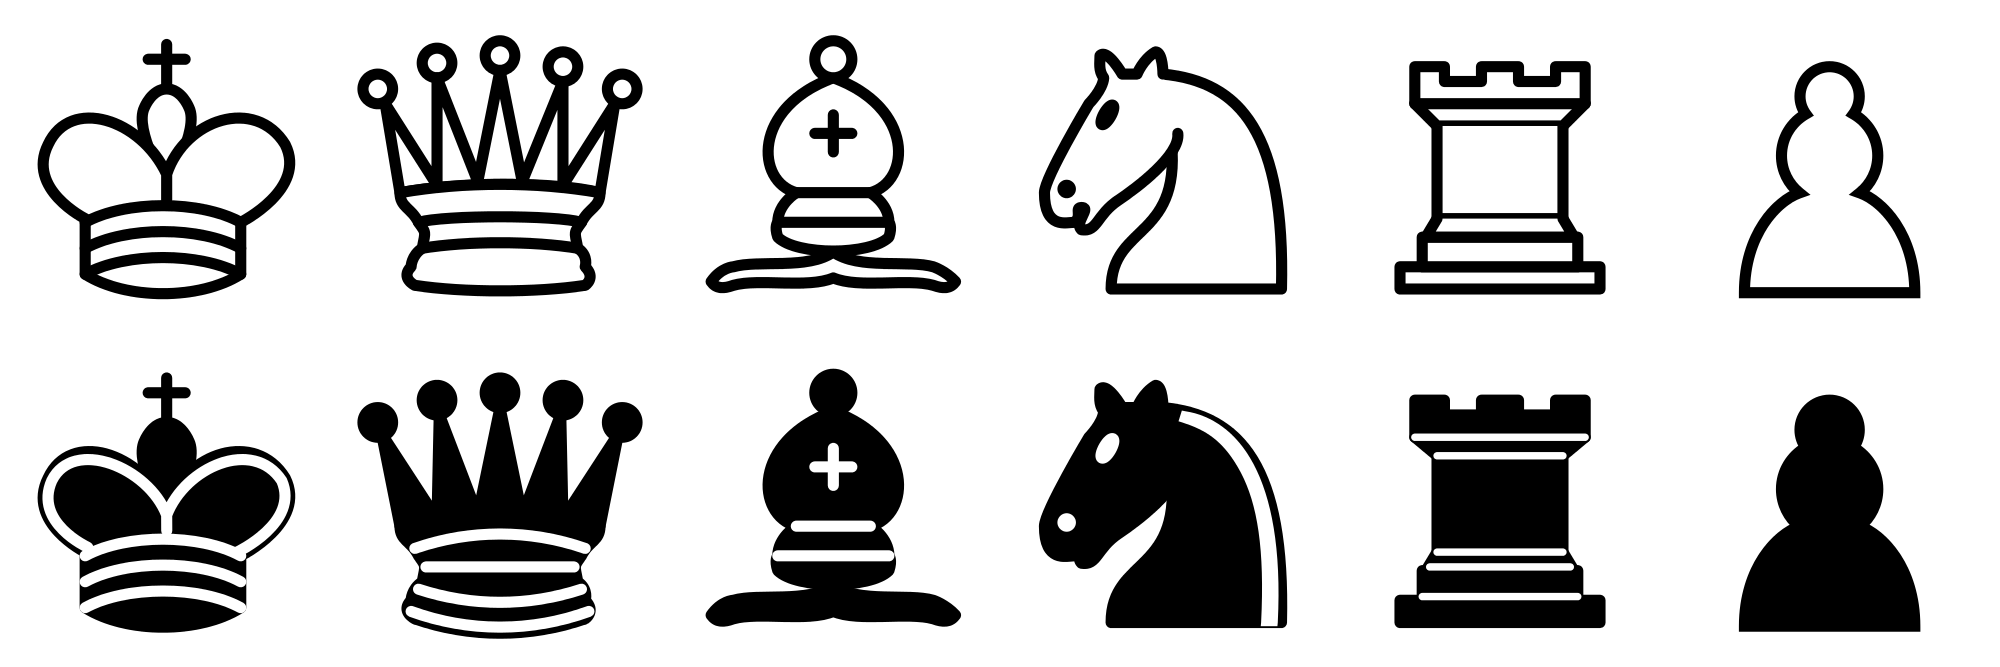 Chess svg #19, Download drawings